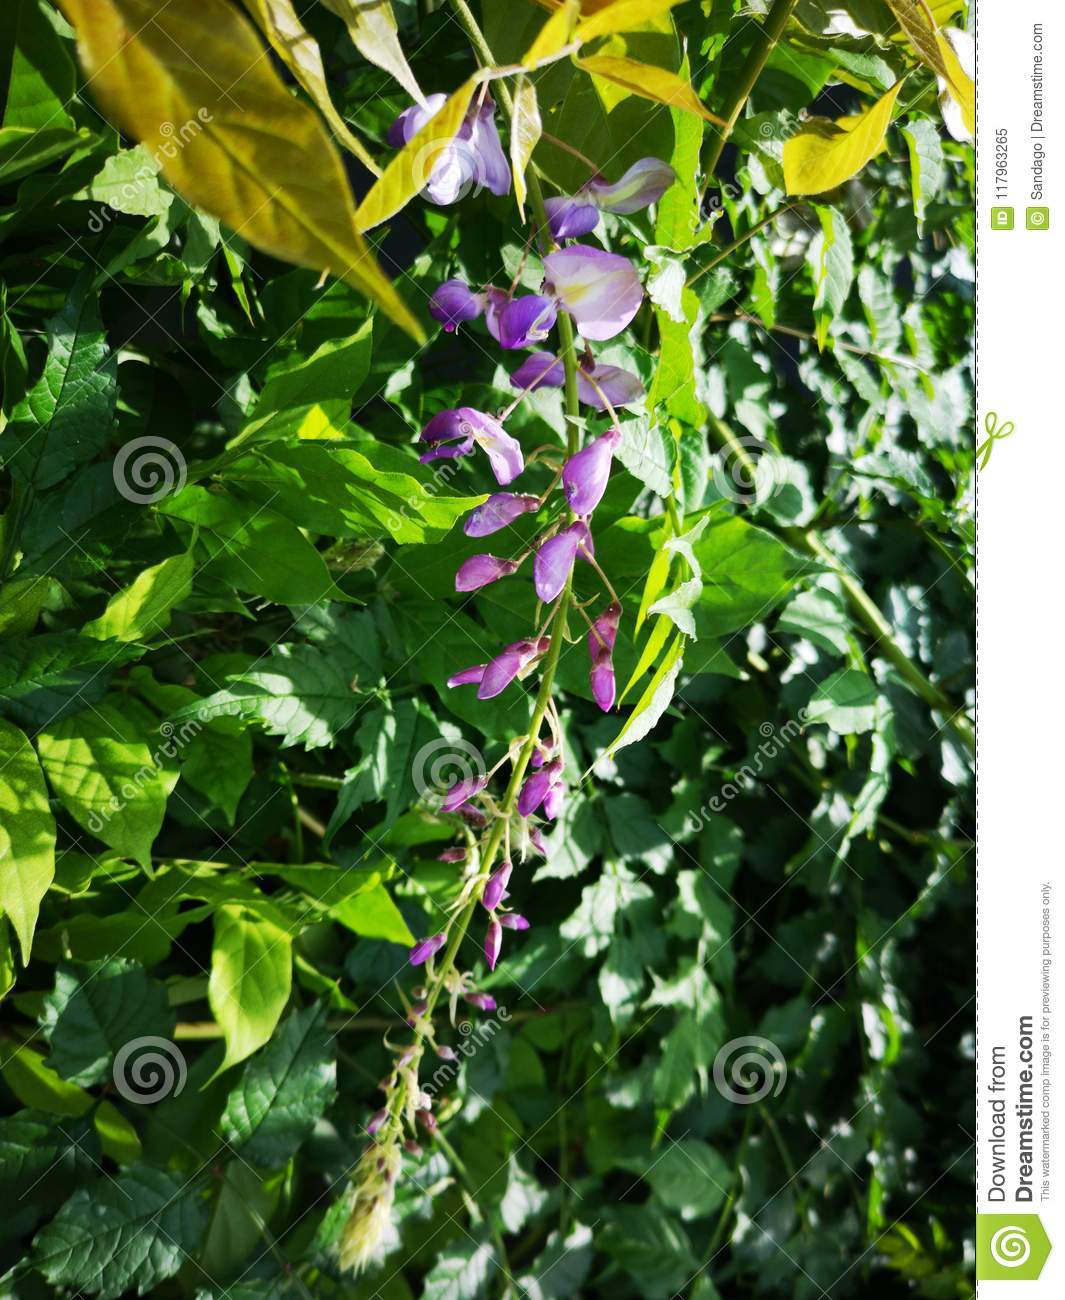 Wisteria Flower Buds Stock Image Image Of Custom Botany 117963265